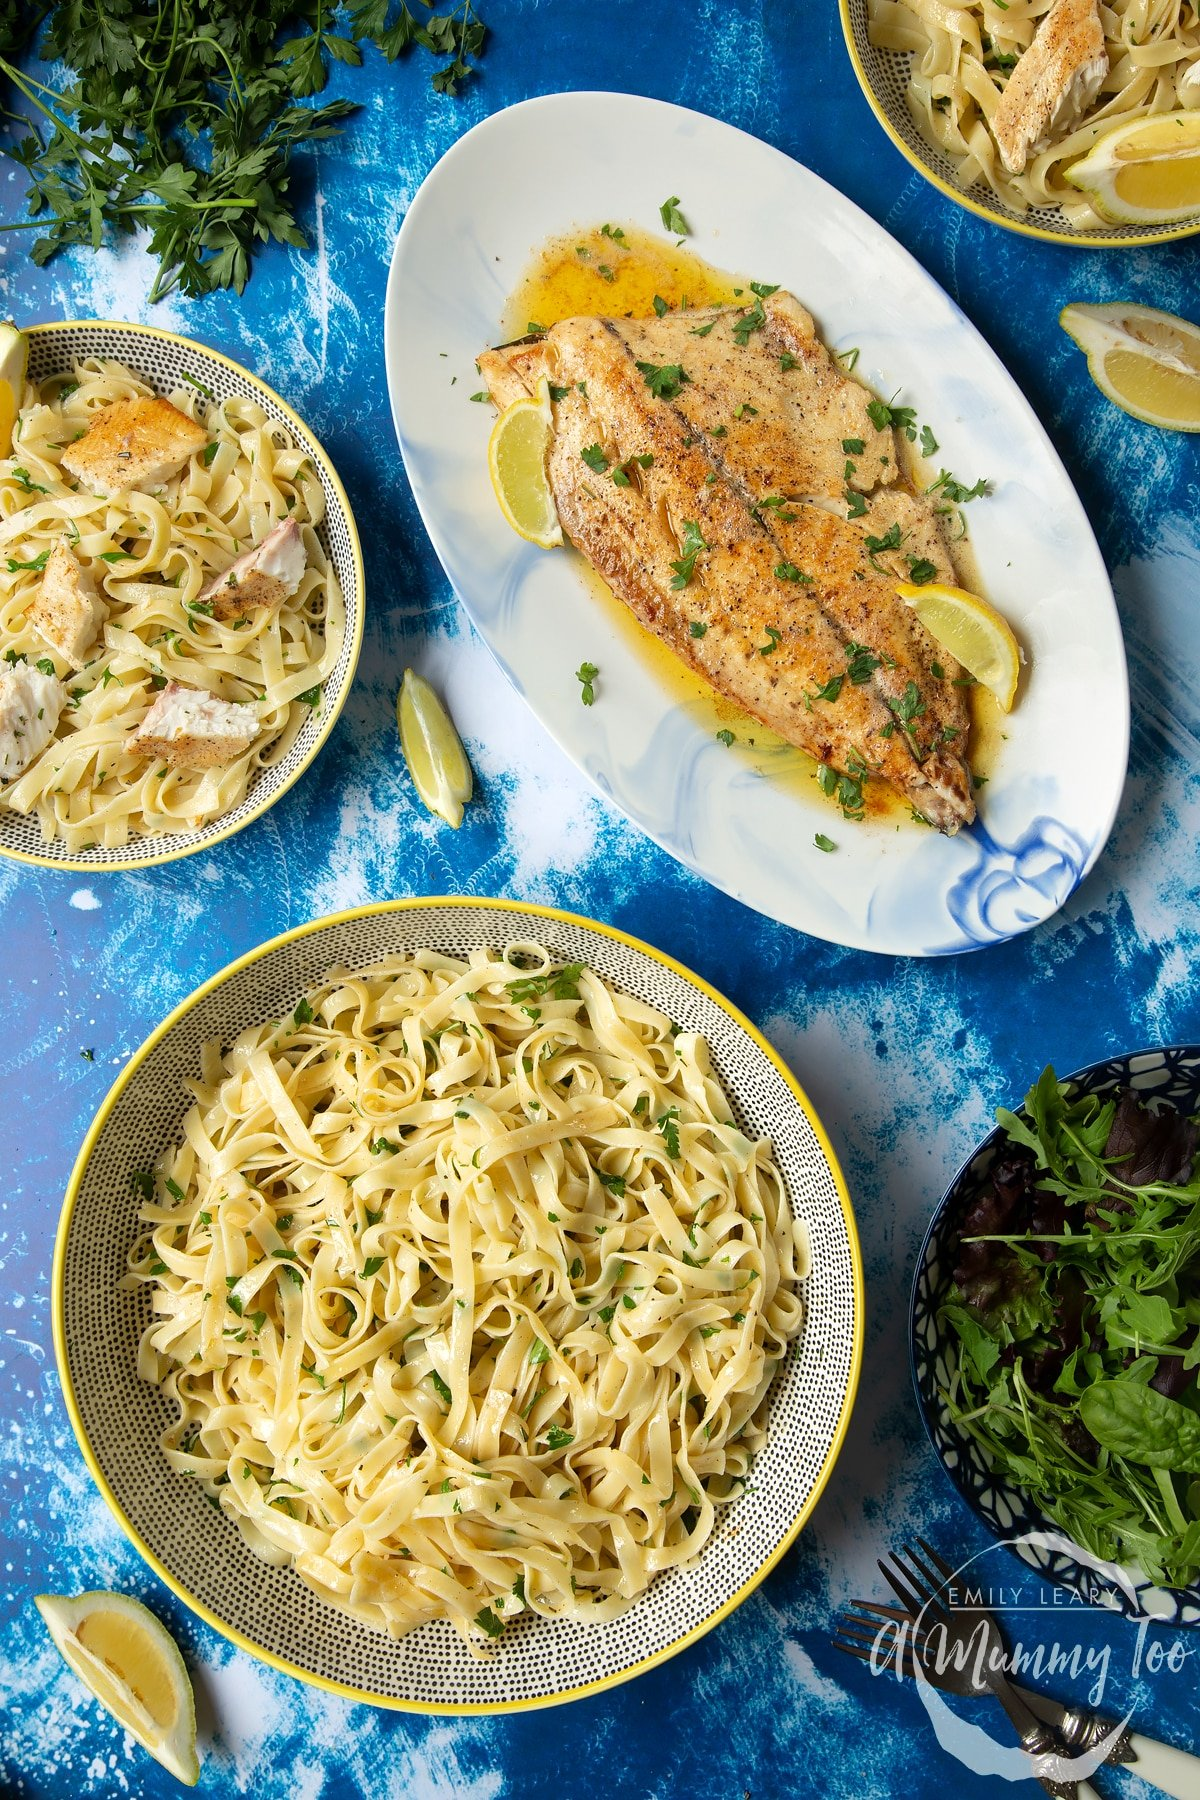 Pan-fried Yellowtail on a large oval serving dish. A large serving bowl of herby tagliatelle is also shown.